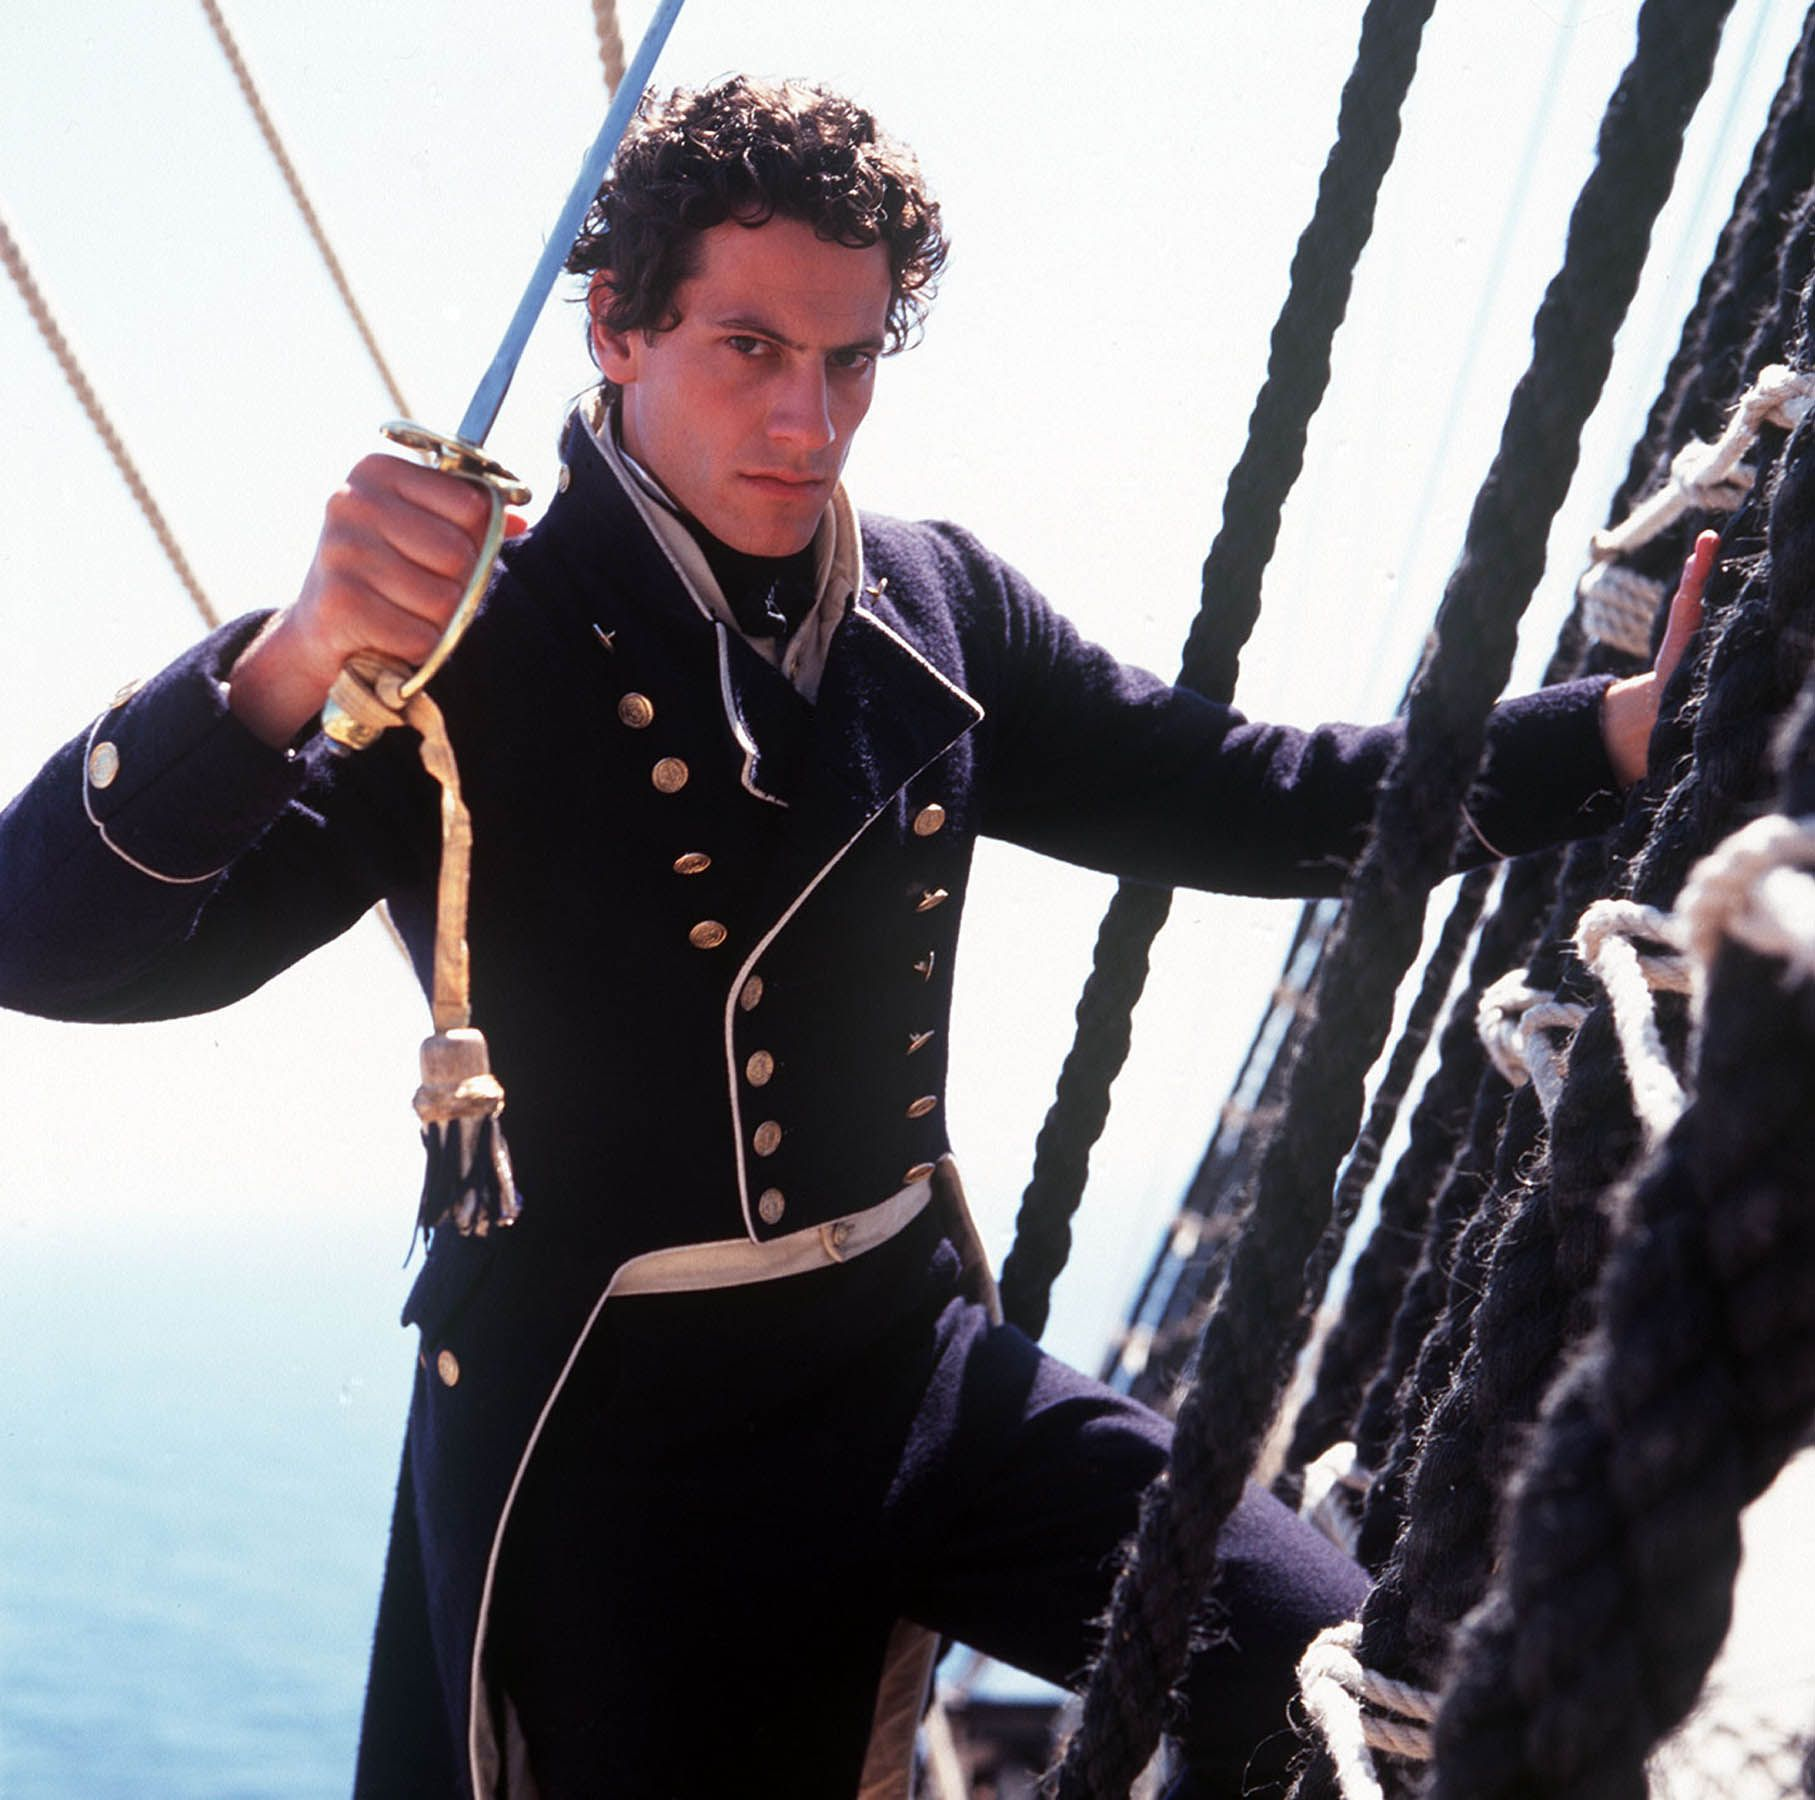 Hornblower Ioan Gruffudd as Horatio Hornblower in 2019